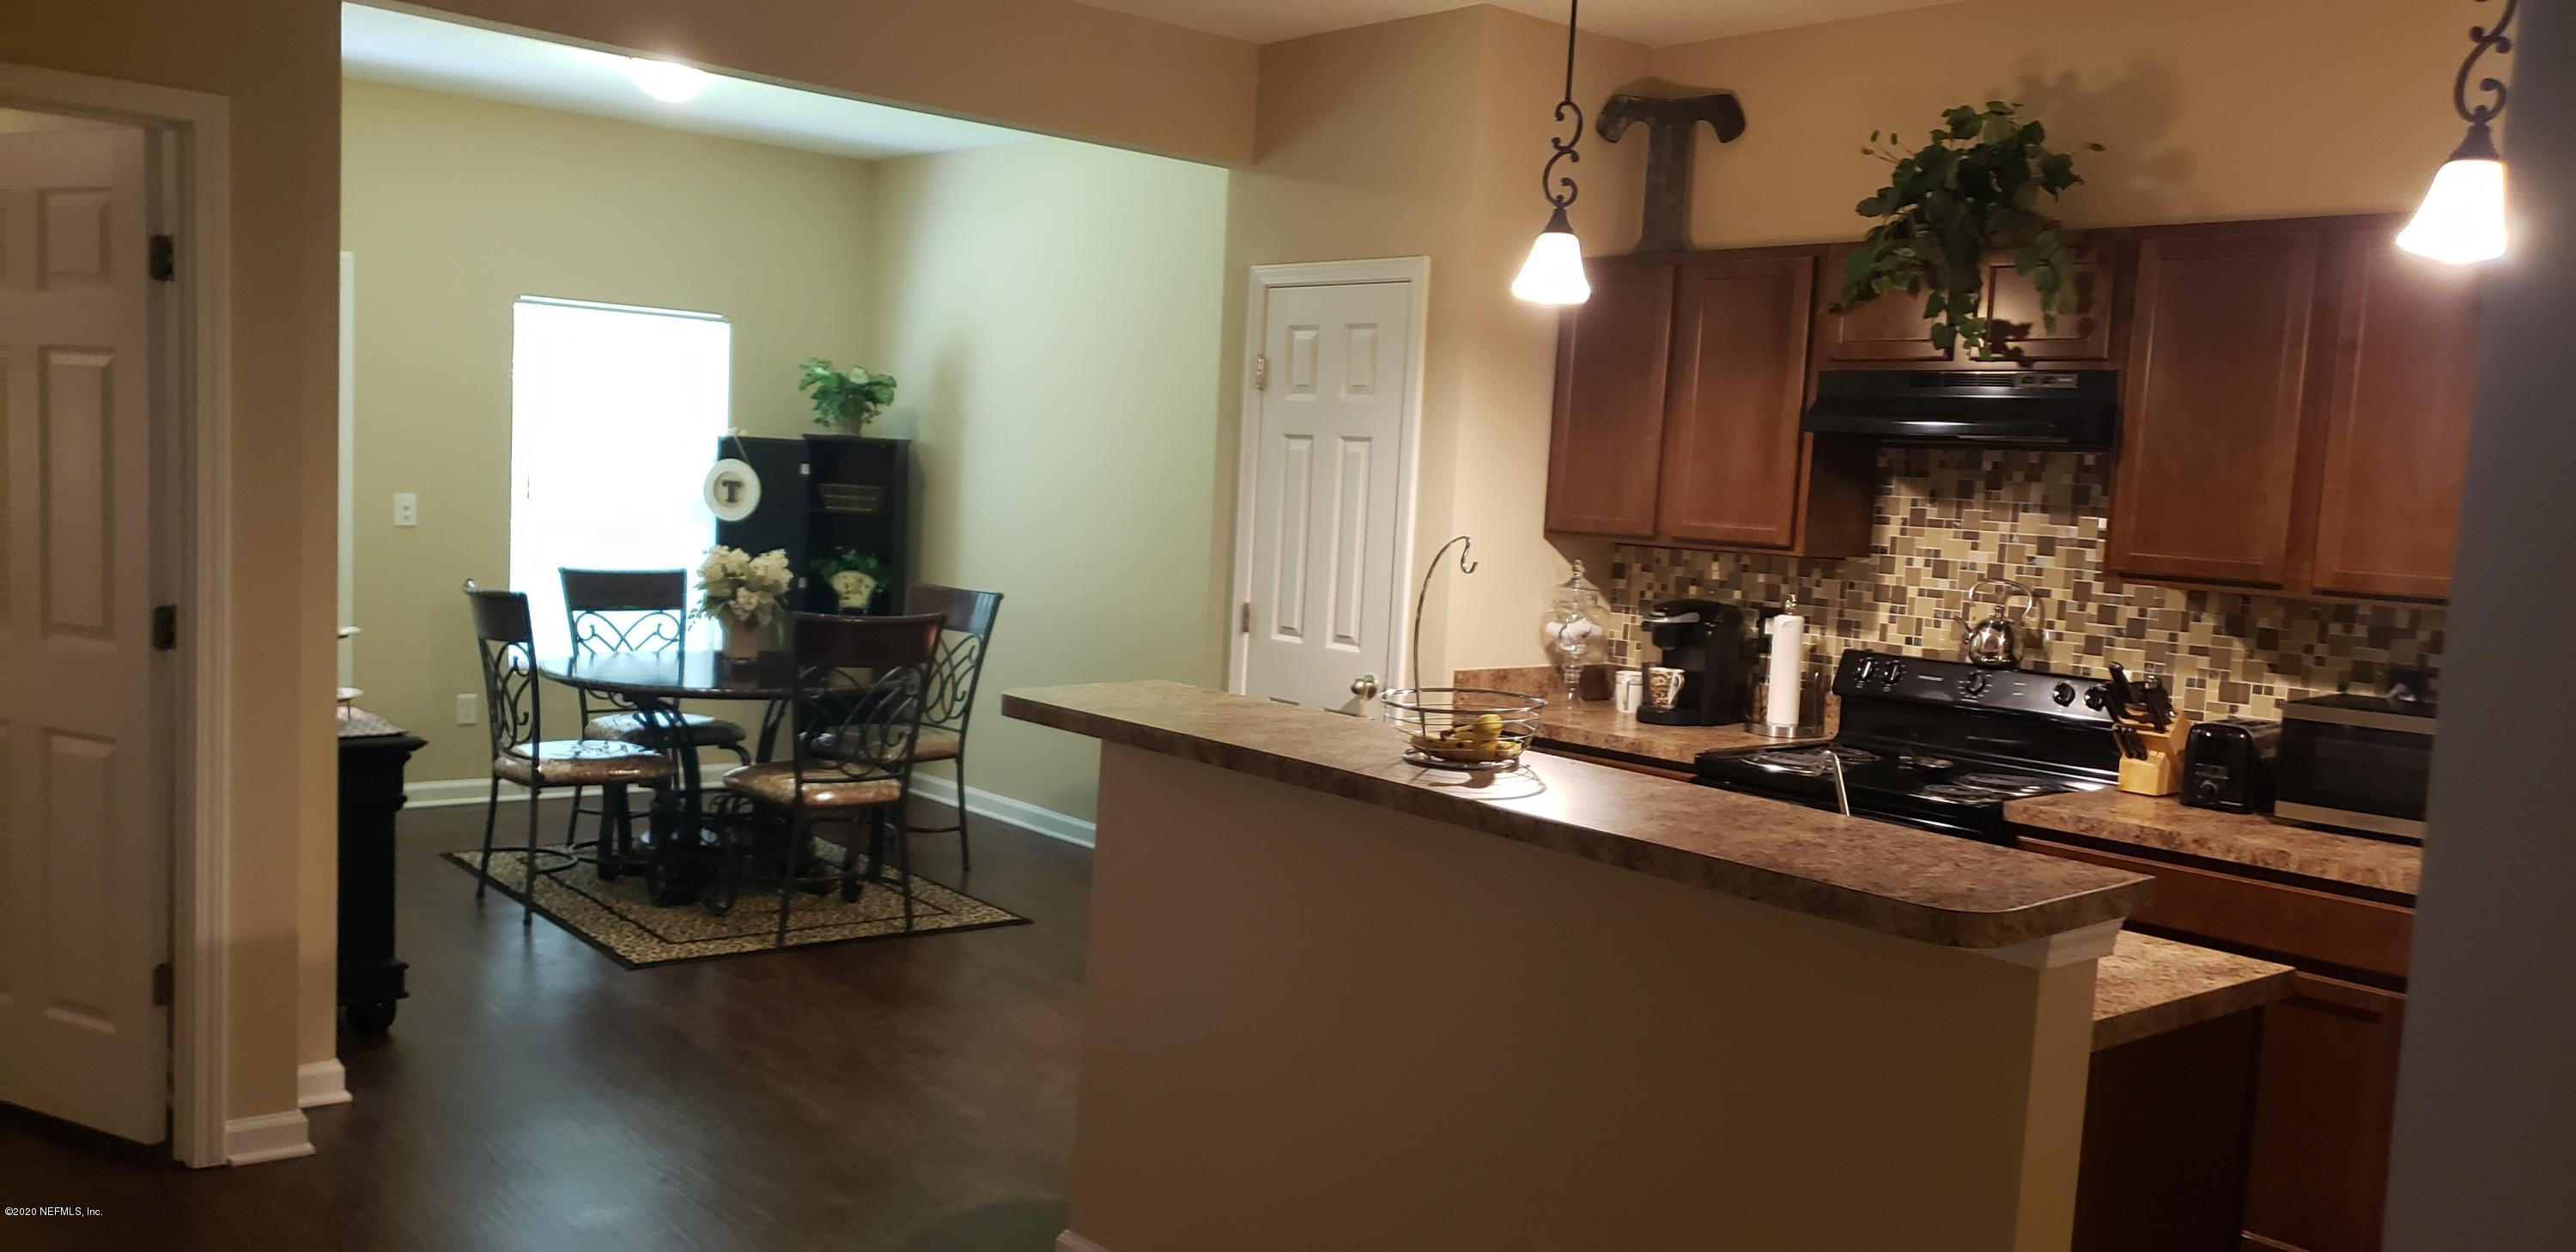 2825 CIRCLE, JACKSONVILLE, FLORIDA 32216, 4 Bedrooms Bedrooms, ,2 BathroomsBathrooms,Residential,For sale,CIRCLE,1048414